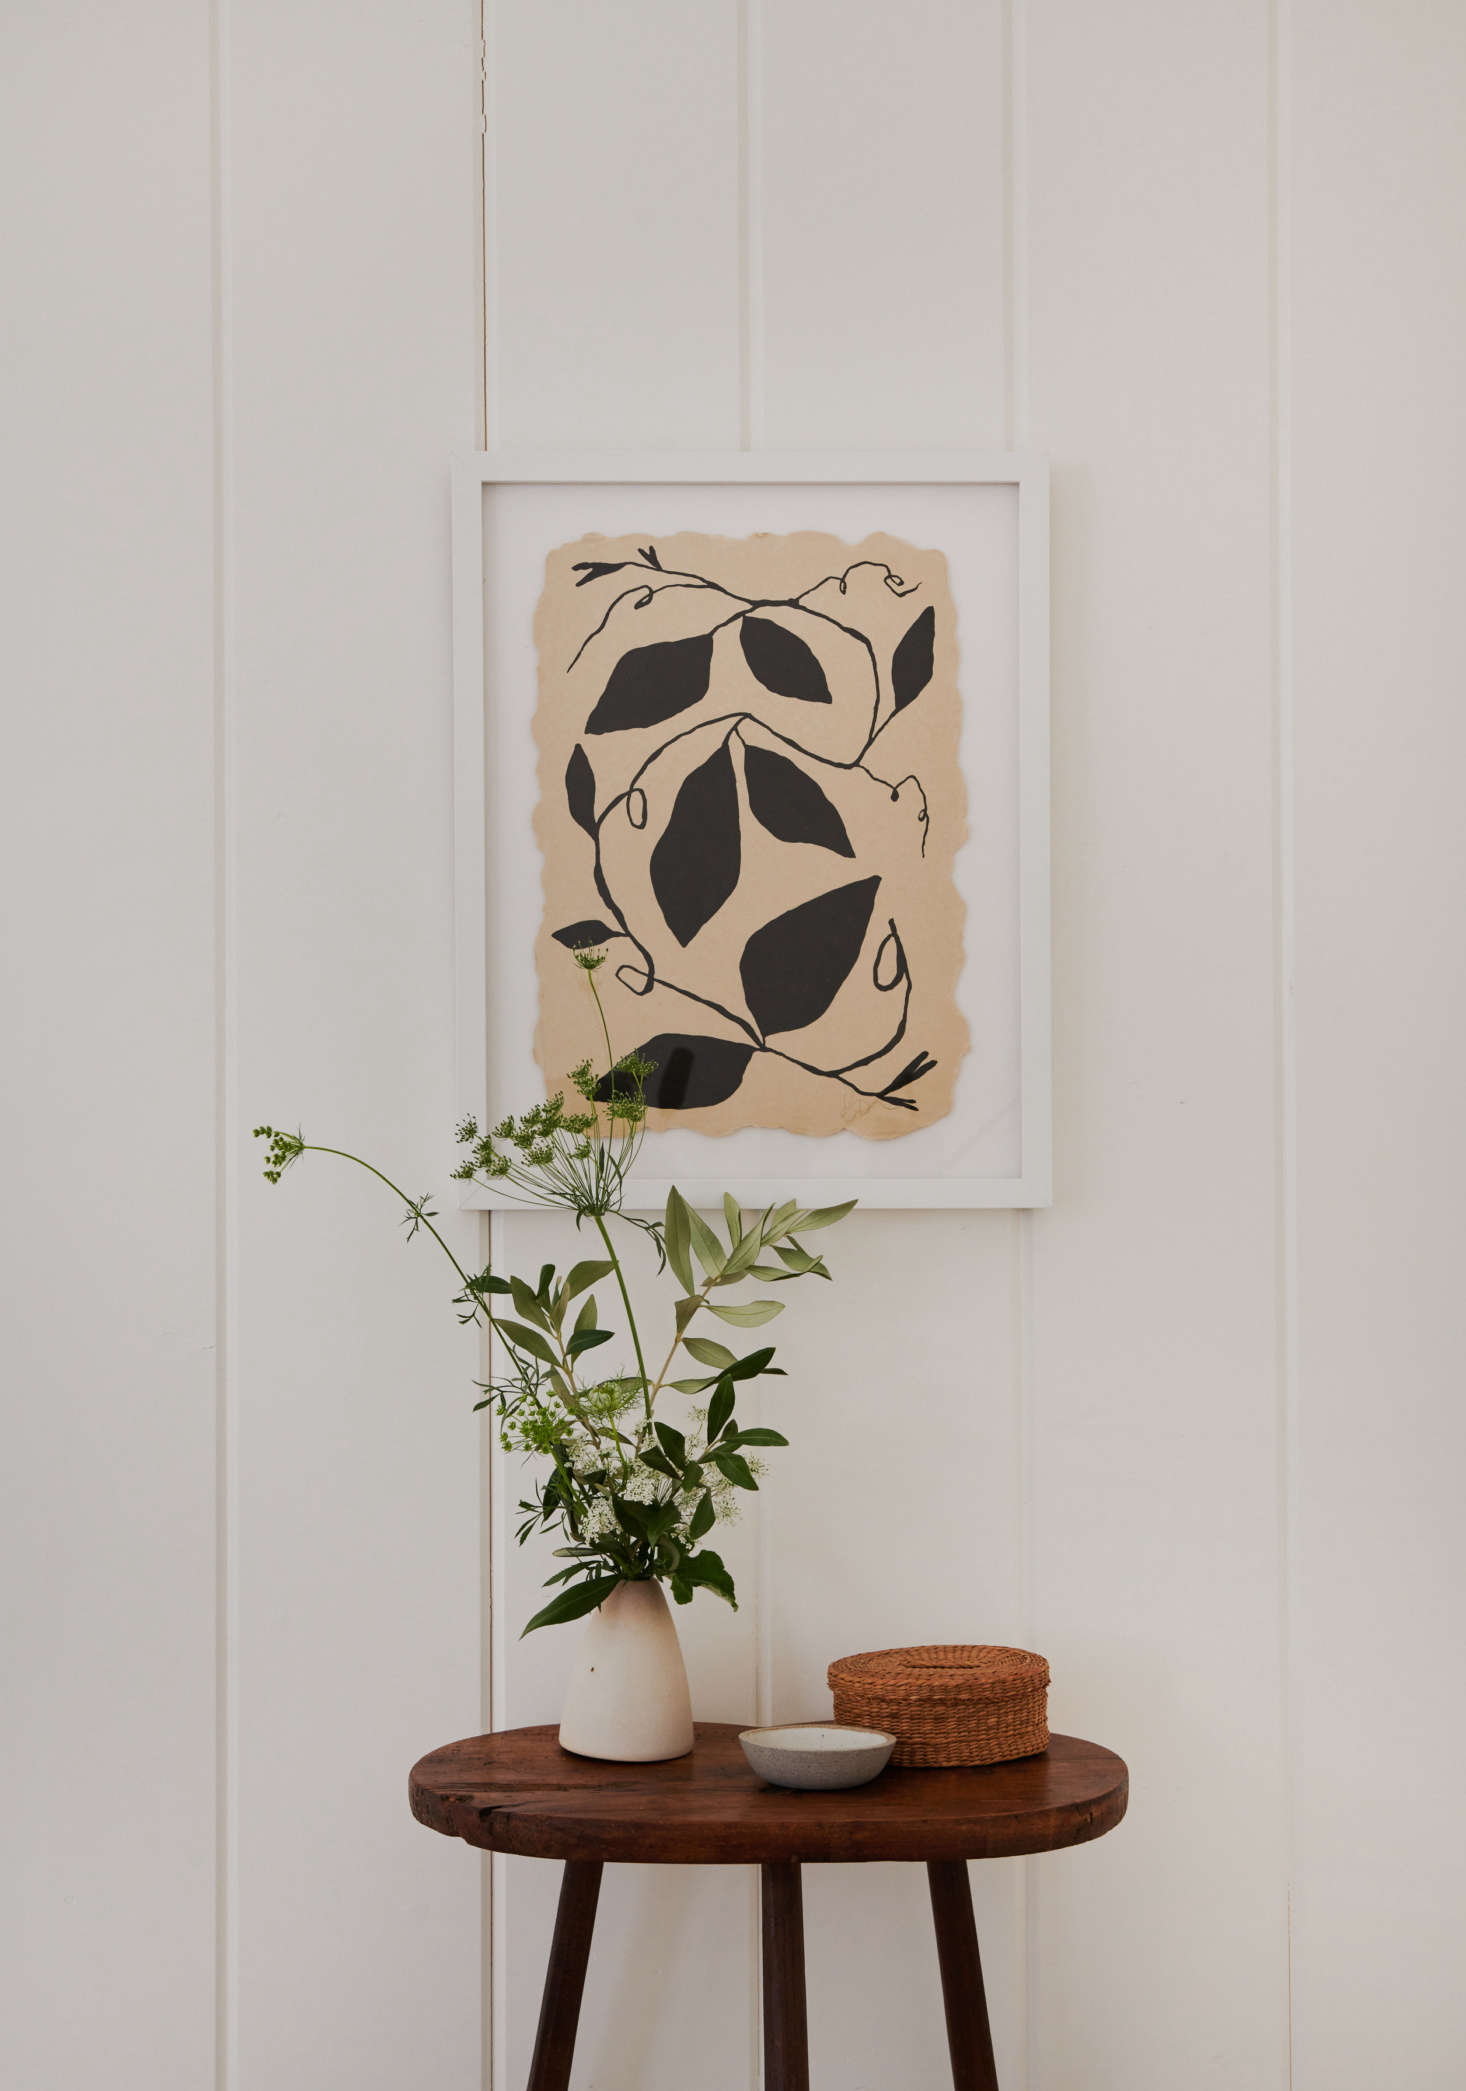 The framed print is by Tennessee-based artist Kate RoebuckviaUprise Art, which provided art throughout the house.